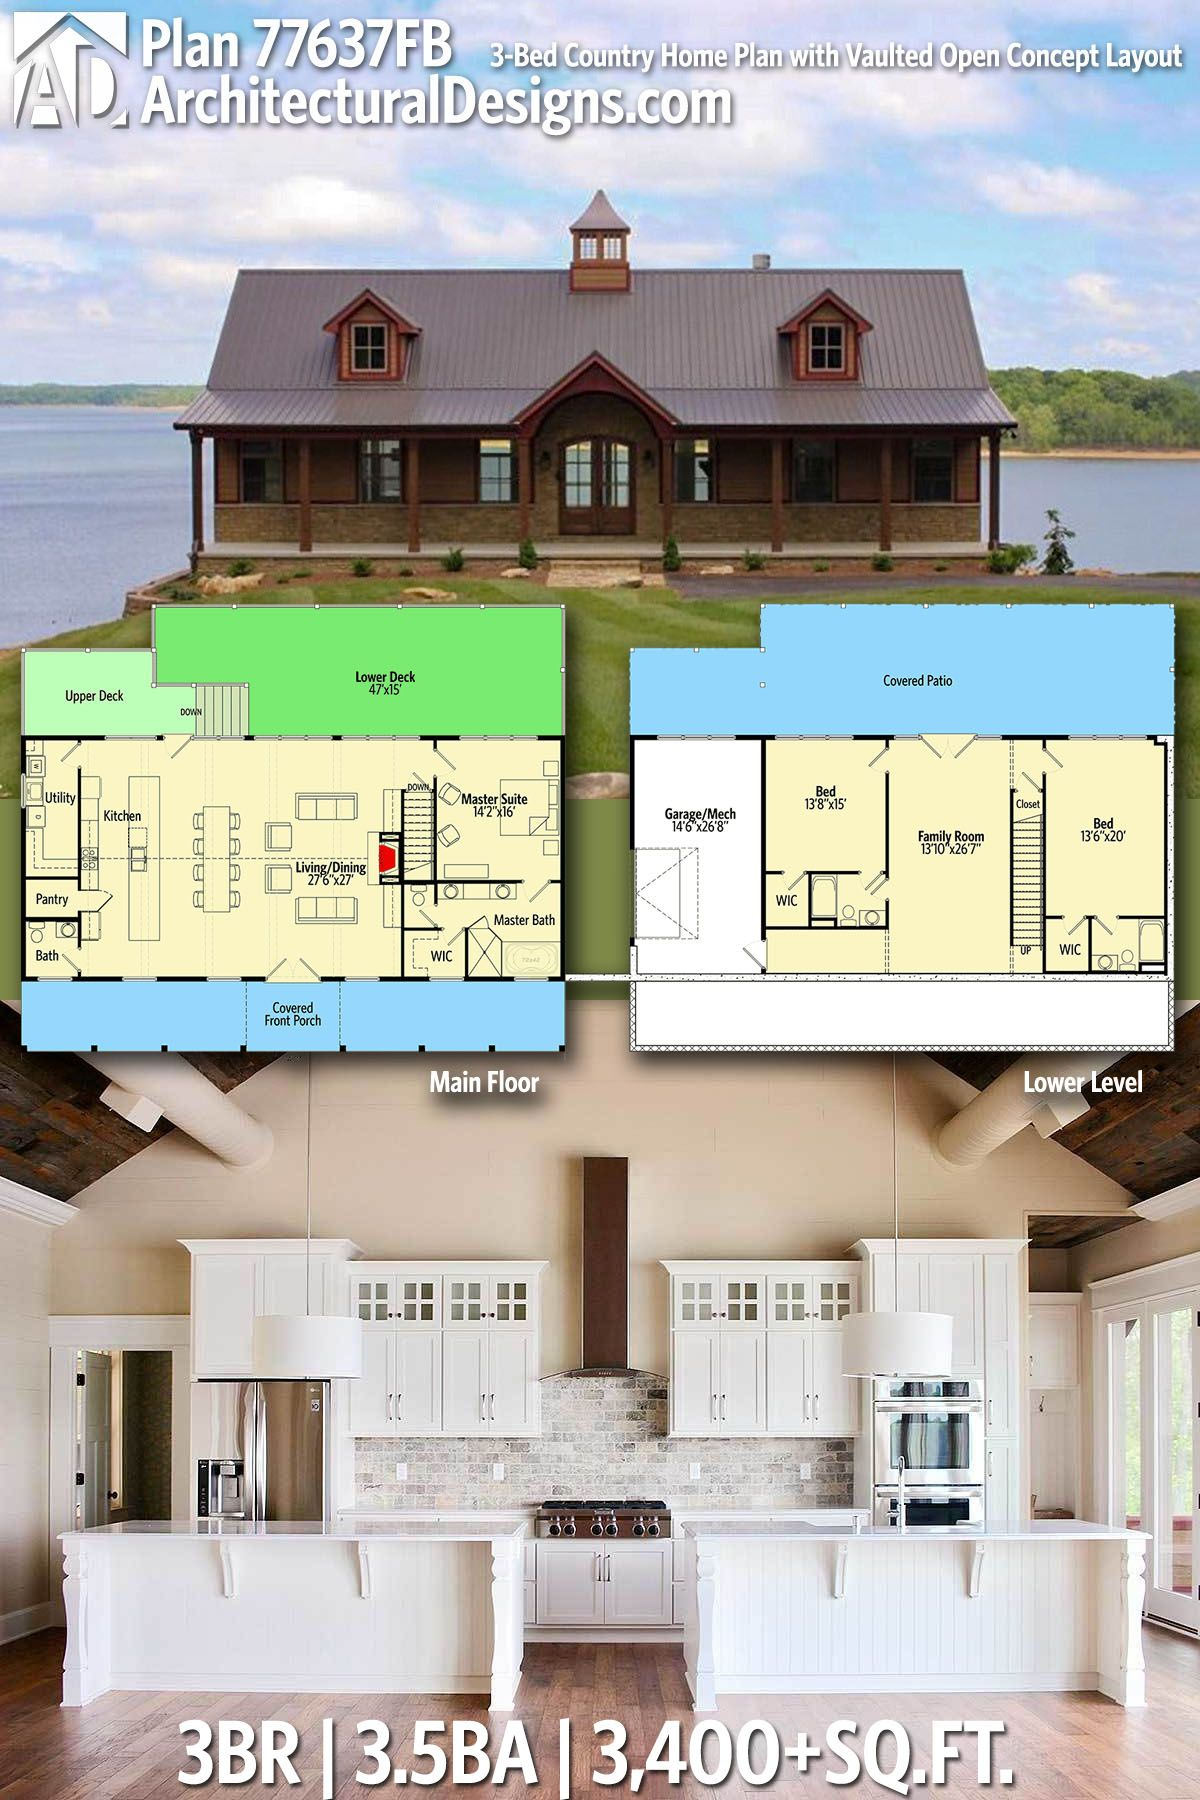 Plan 77637fb 3 Bed Country Home Plan With Vaulted Open Concept